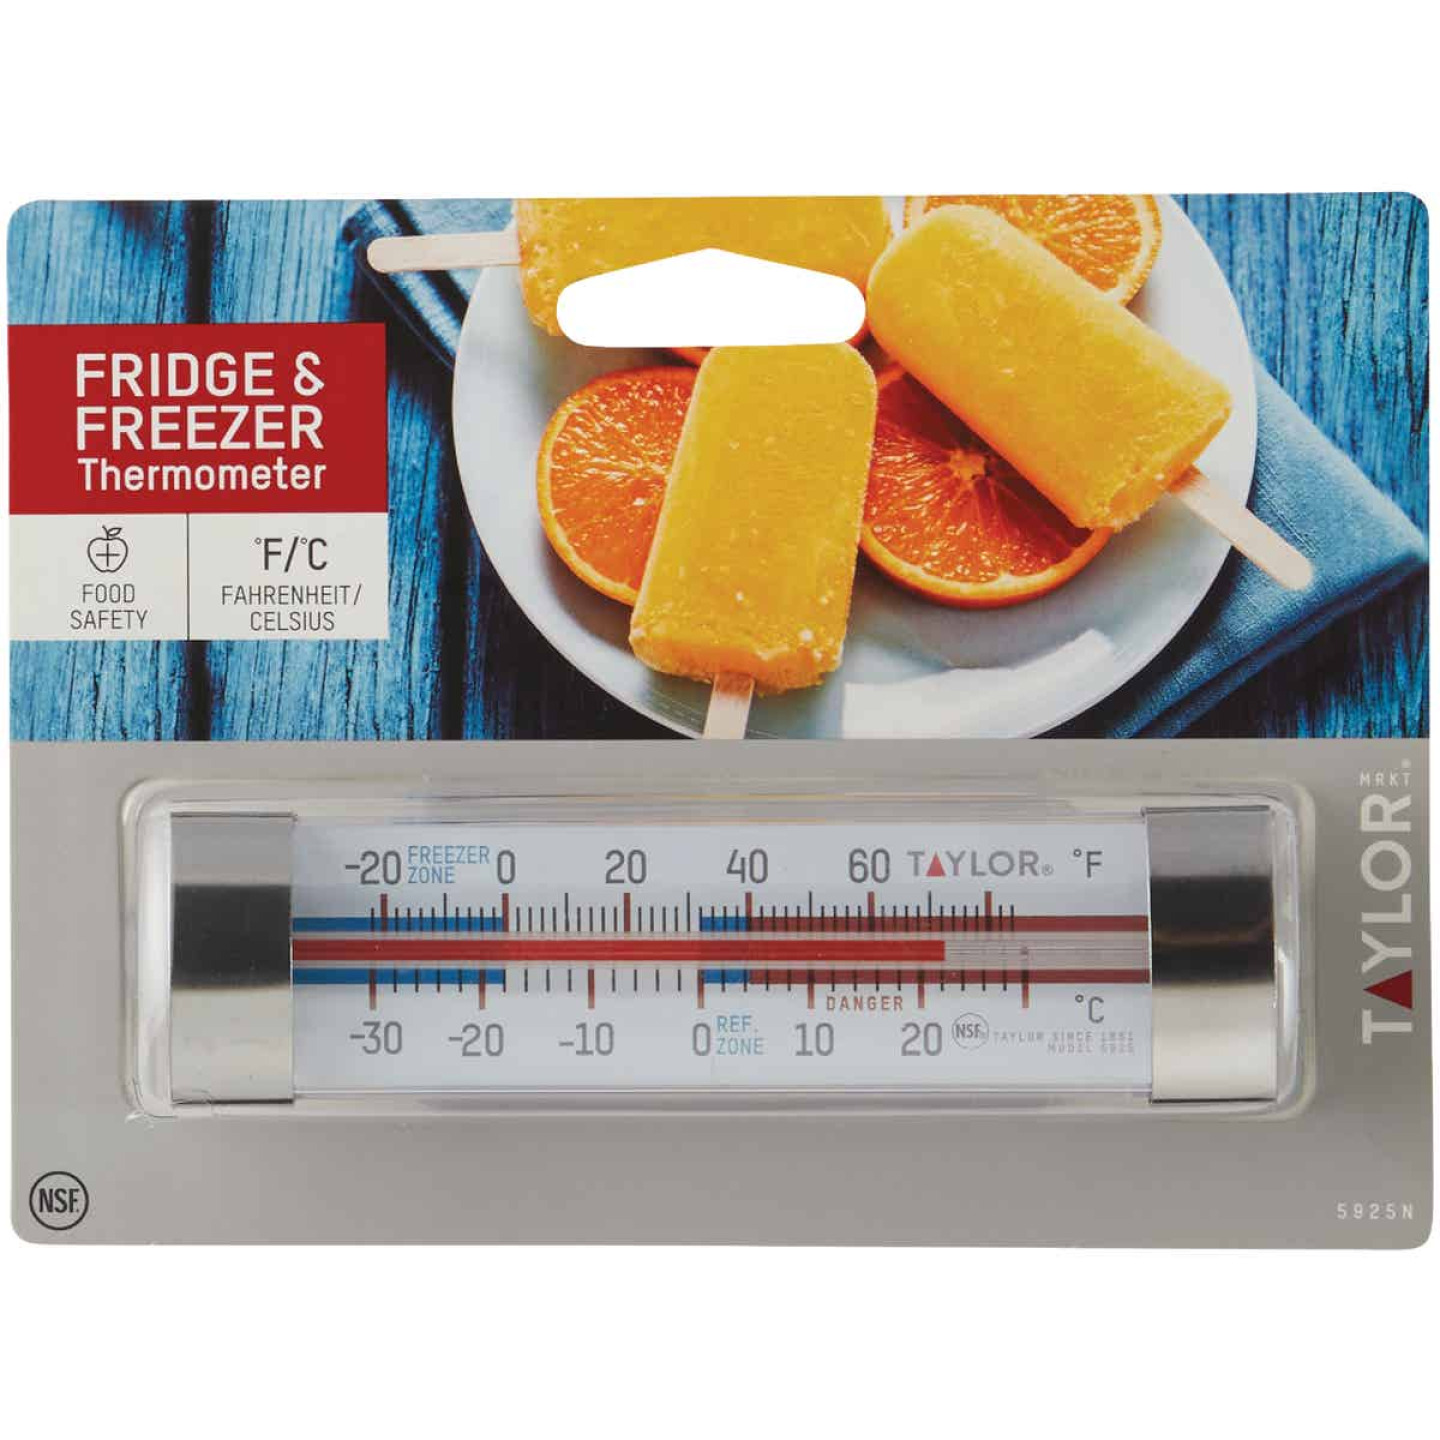 Taylor Freezer Or Refrigerator Kitchen Thermometer Image 2